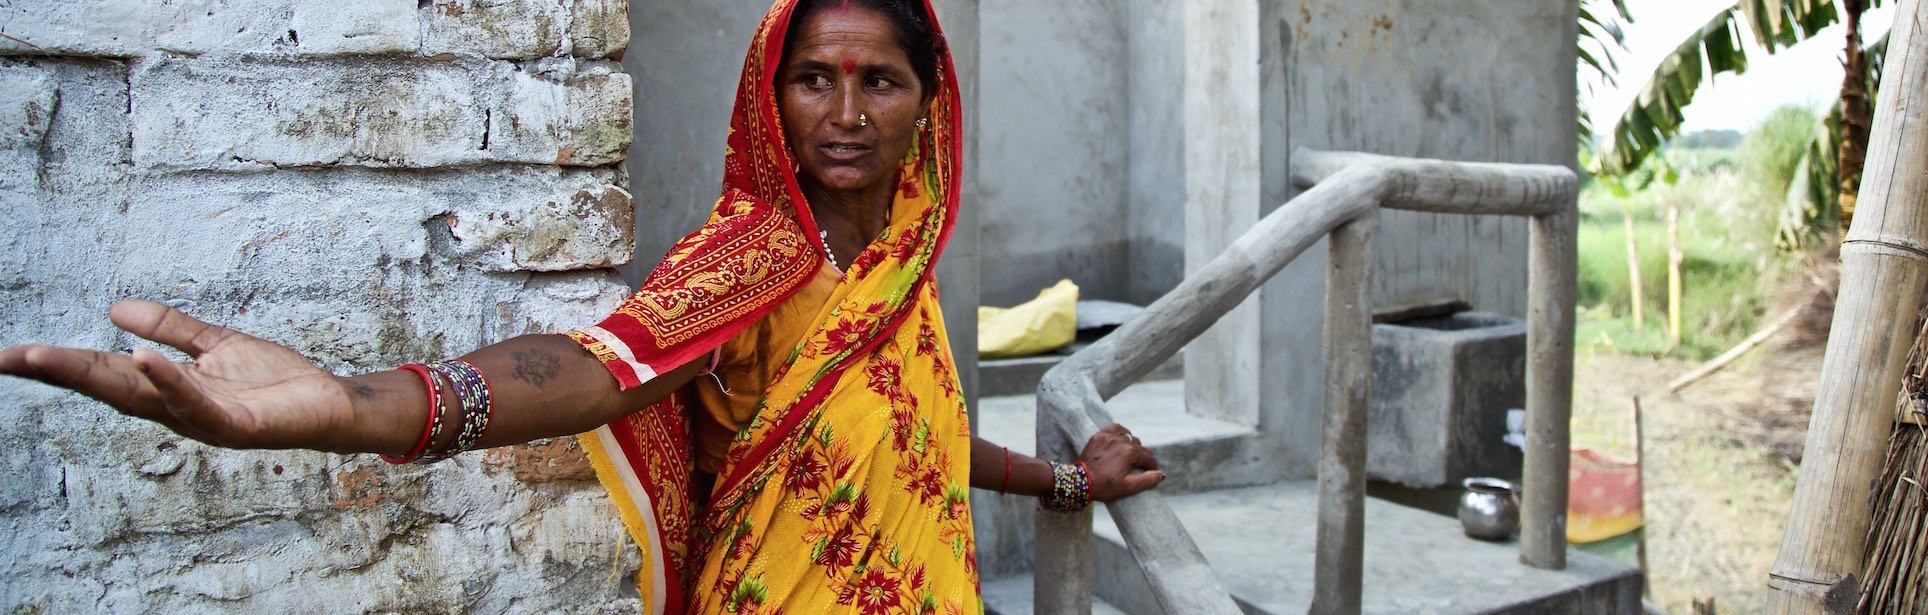 Ecosan Toilets Are Making It Safer for Rural Bihar's Women to Defecate During Floods